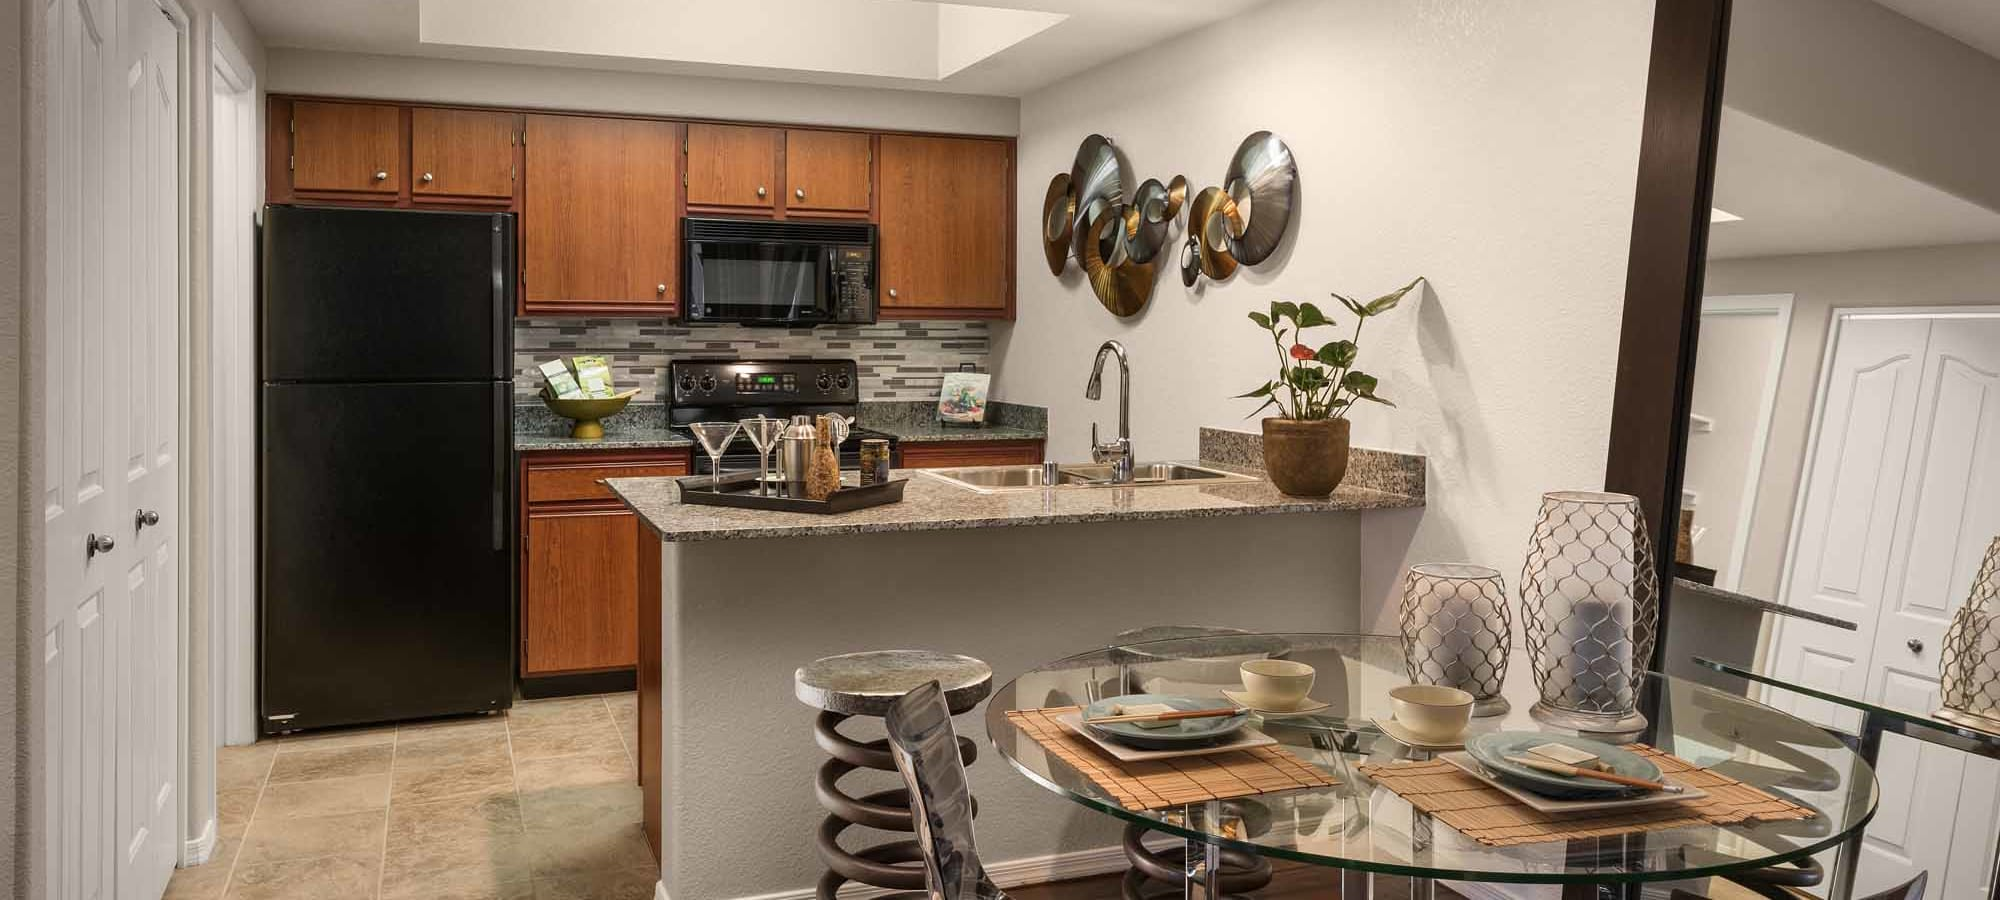 Stylish kitchen in model home at San Marbeya in Tempe, Arizona